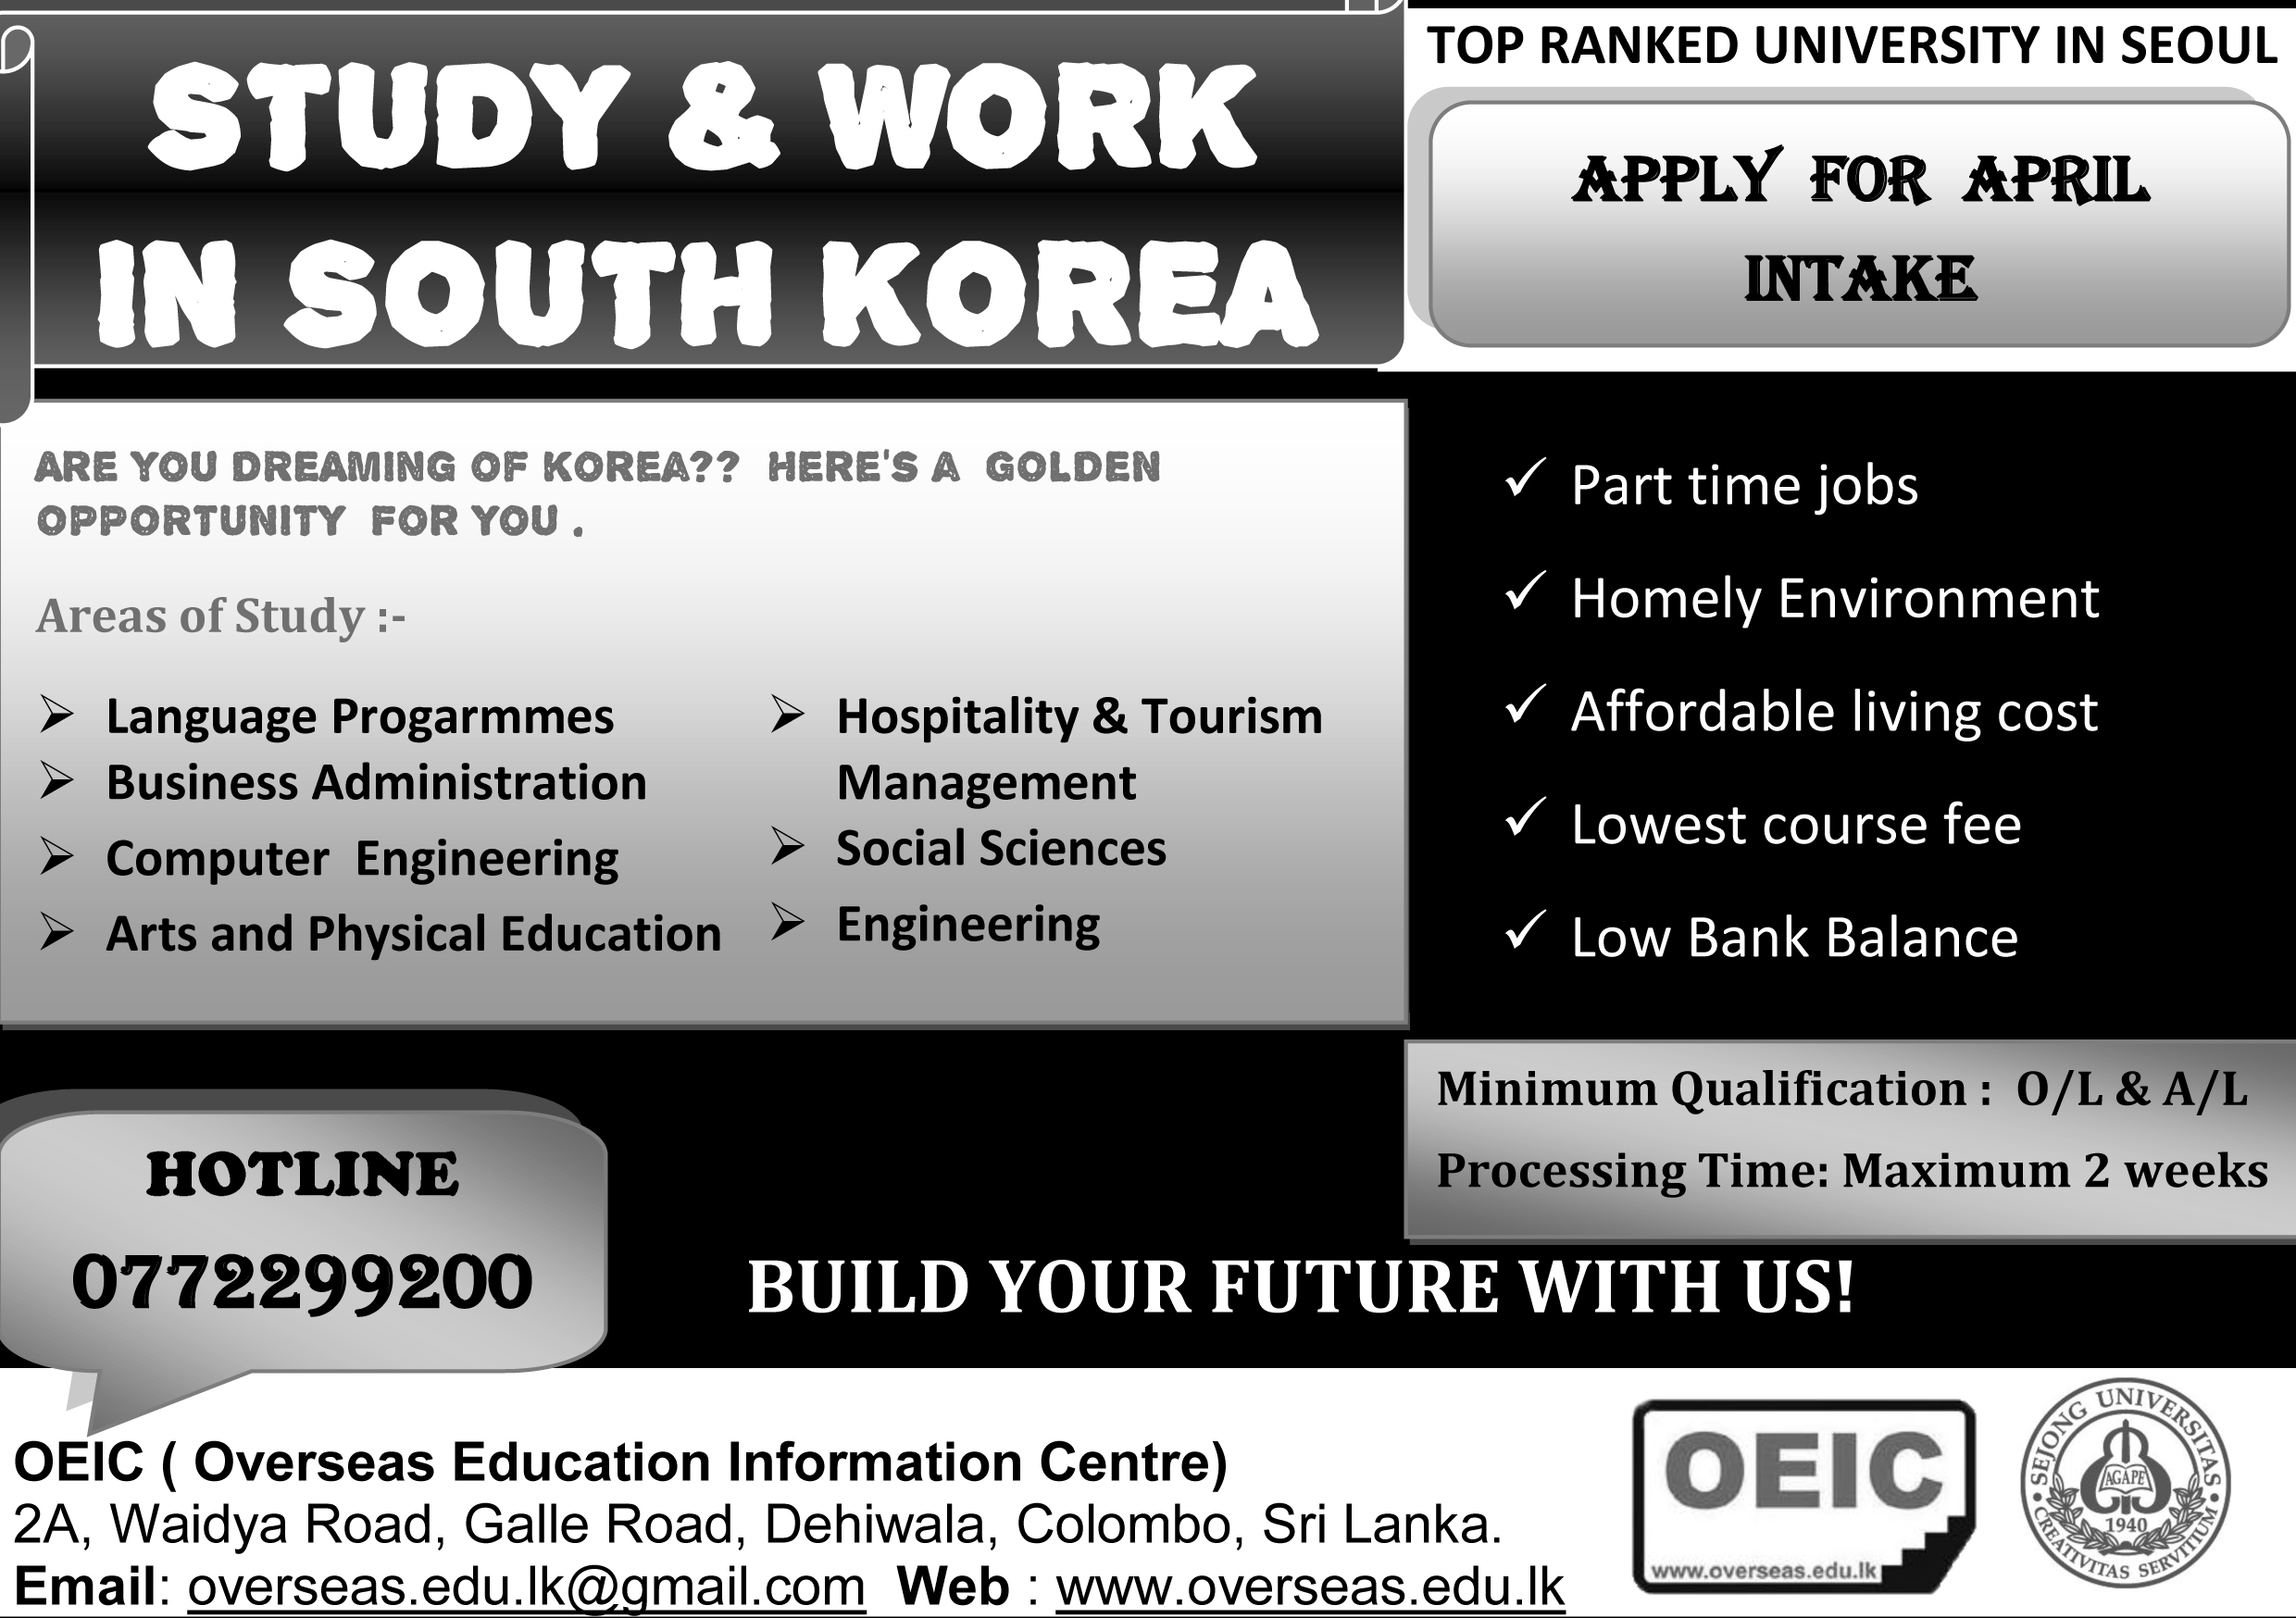 Oeic Overseas Education Information Centre